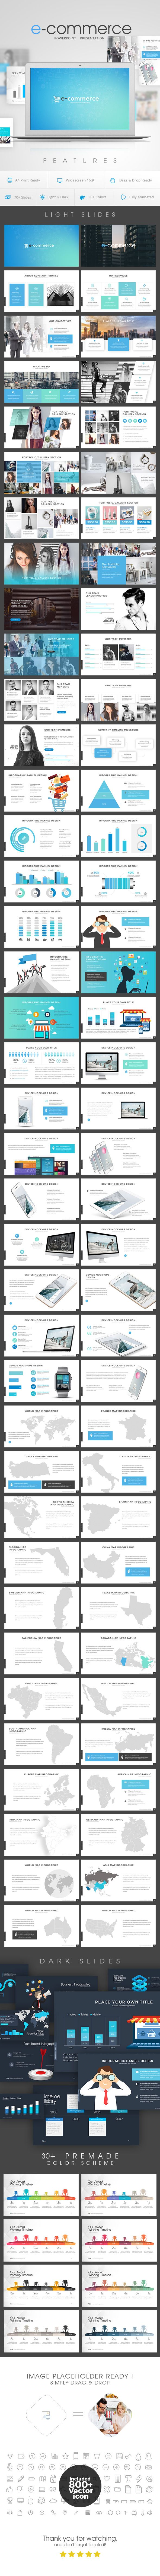 Ecommerce  — Powerpoint PPTX #Social Marketing #creative • Download ➝ https://graphicriver.net/item/ecommerce-power-point-presentation/19644646?ref=pxcr